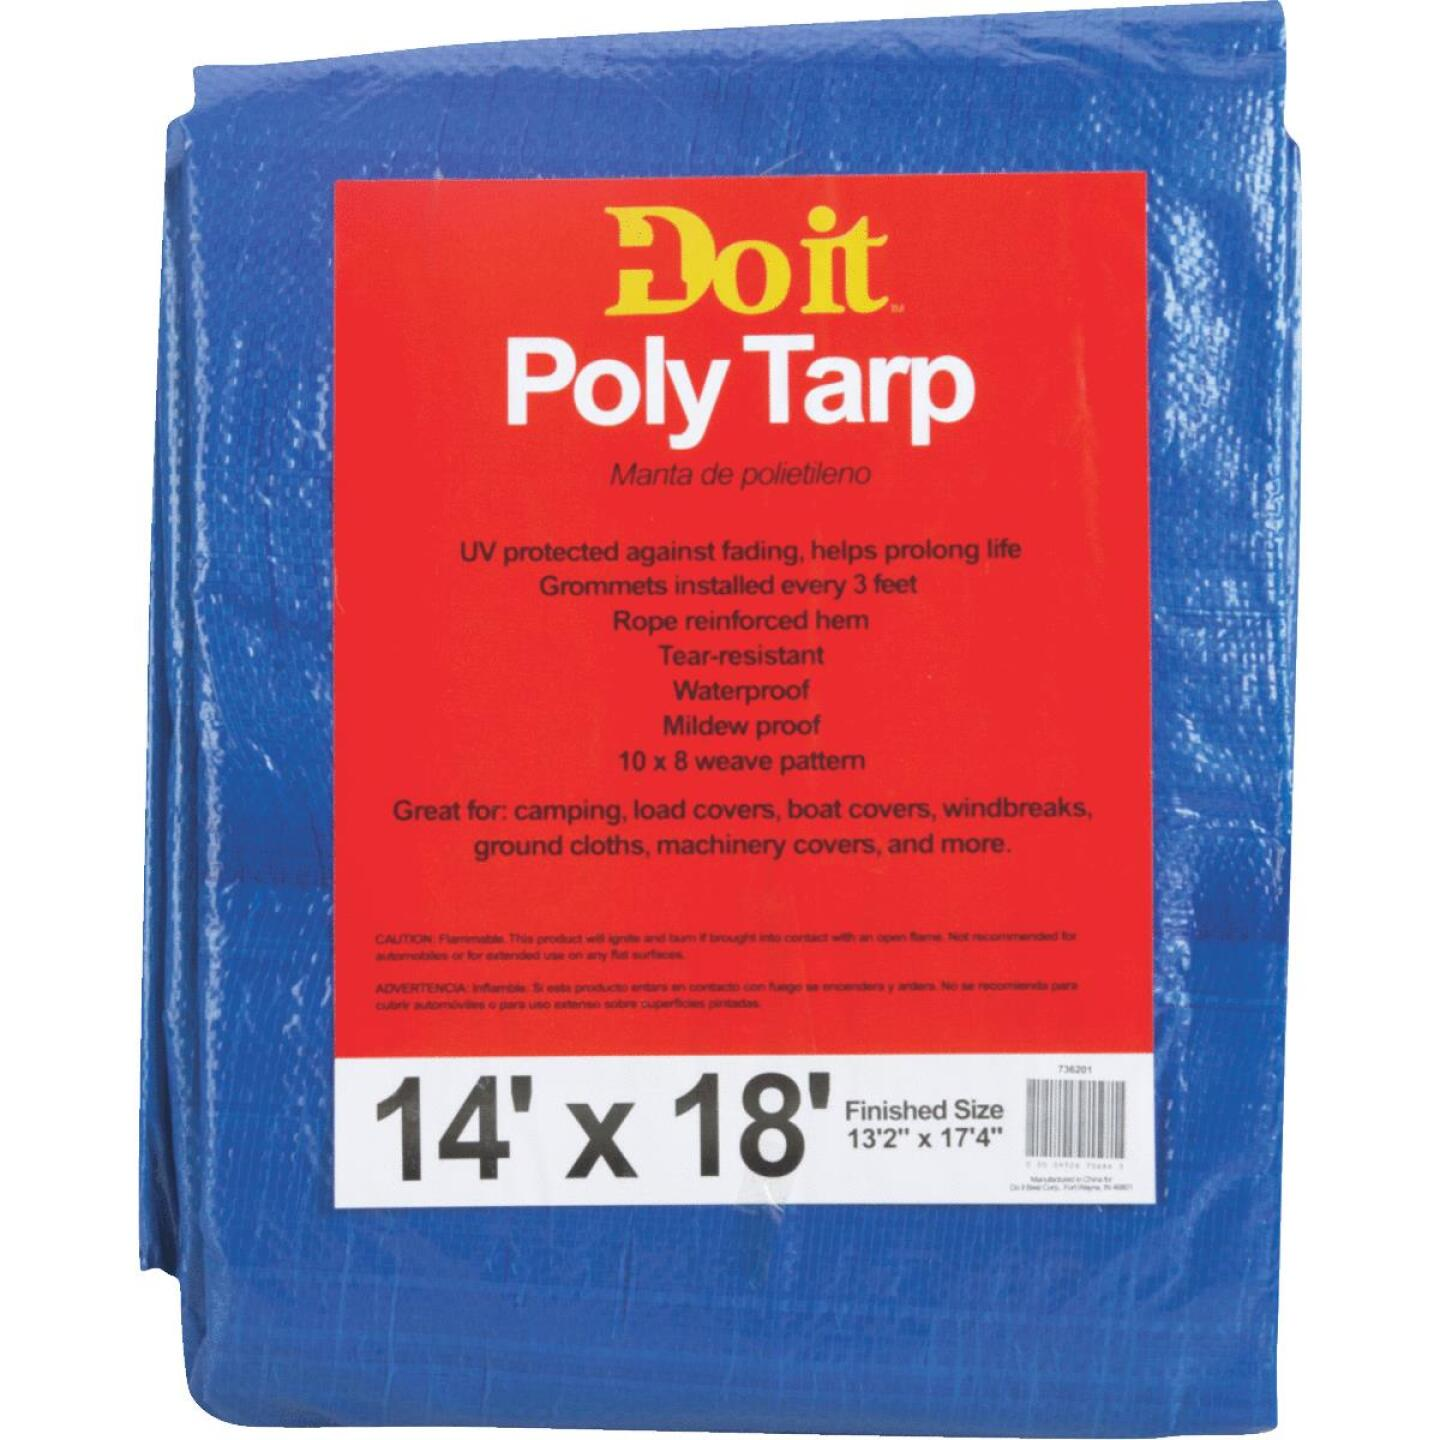 Do it Blue Woven 14 Ft. x 18 Ft. Medium Duty Poly Tarp Image 1